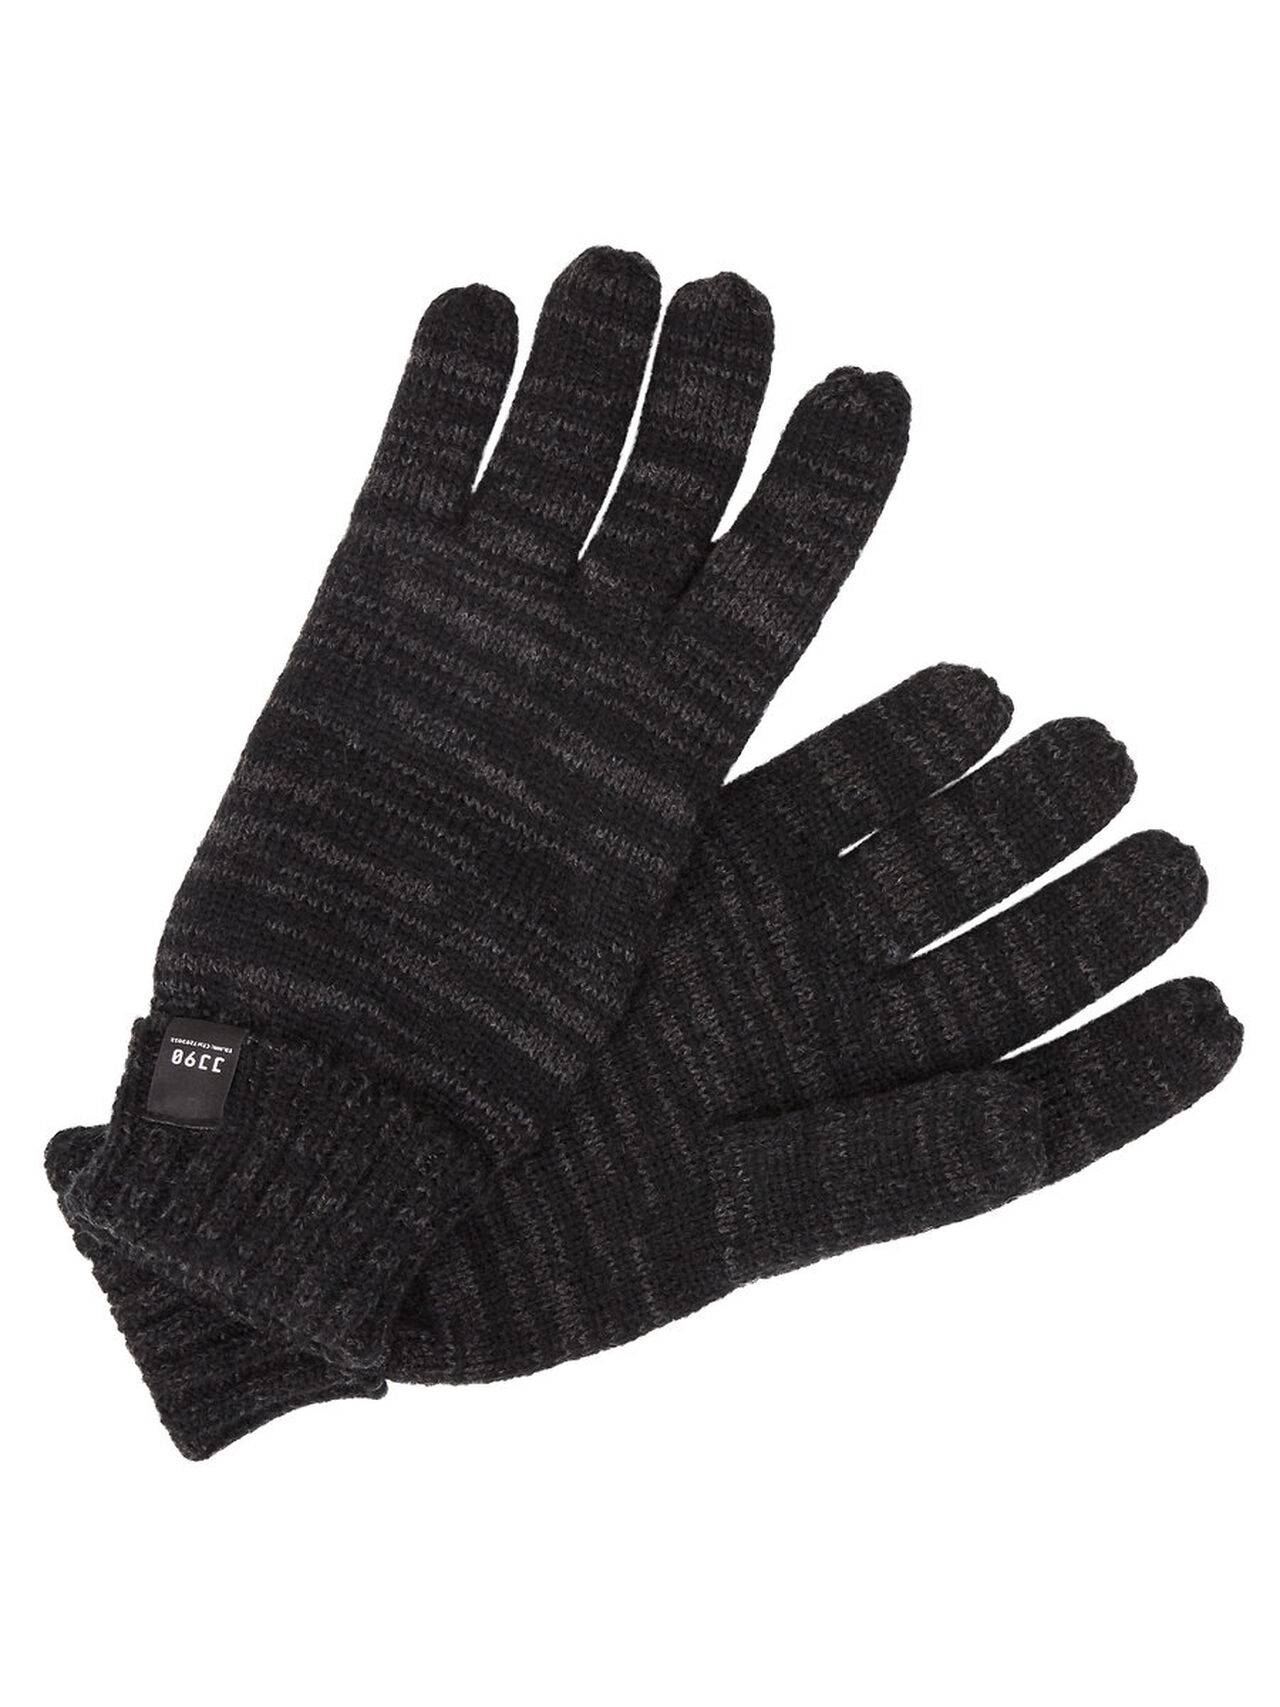 JACK & JONES Knit Gloves Men Grey DarkGreyMelange